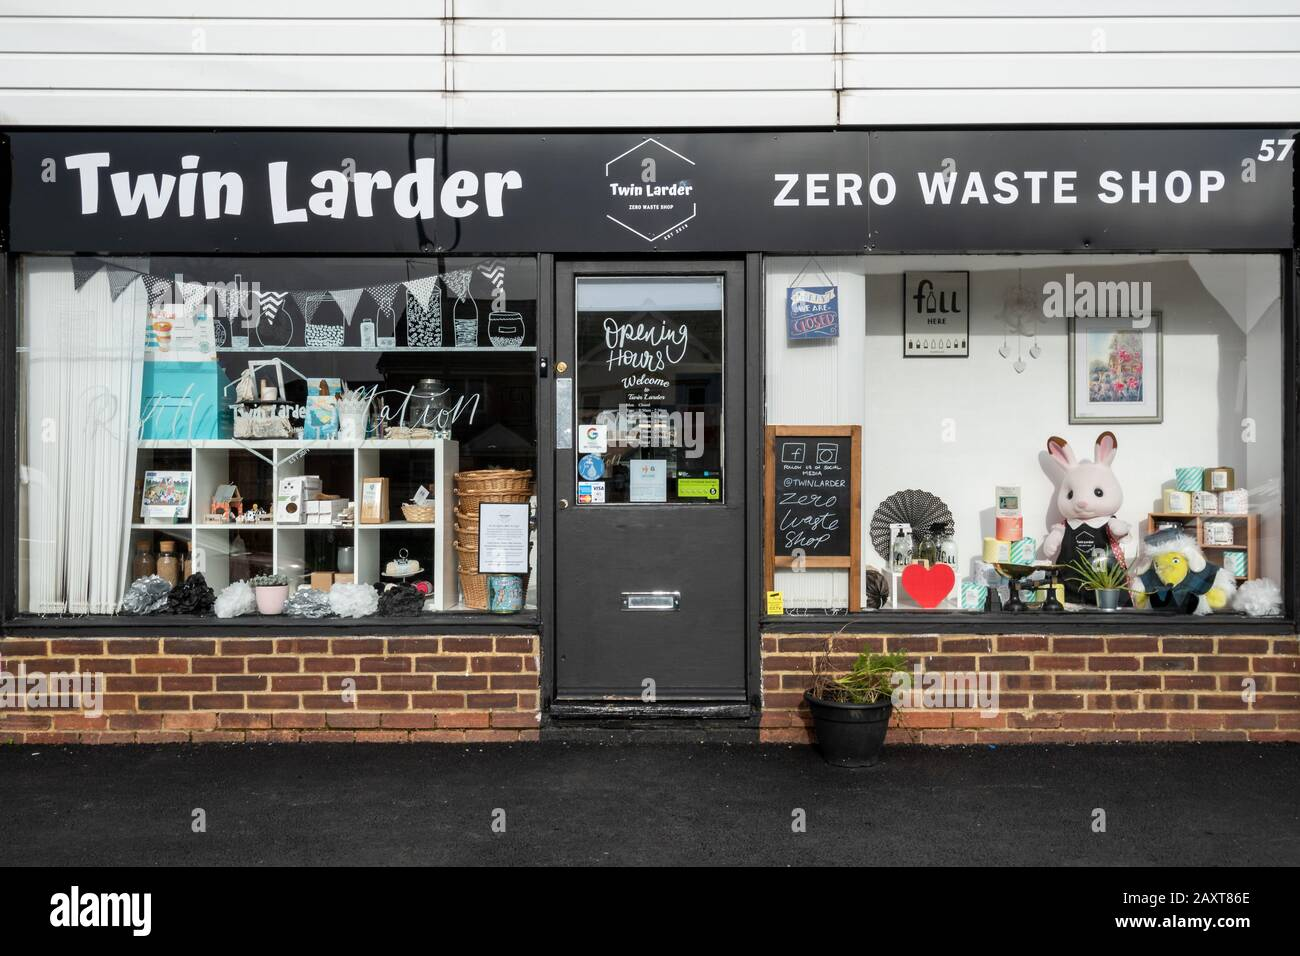 zero-waste-shop-selling-sustainable-and-plastic-free-goods-uk-2AXT86E.jpg